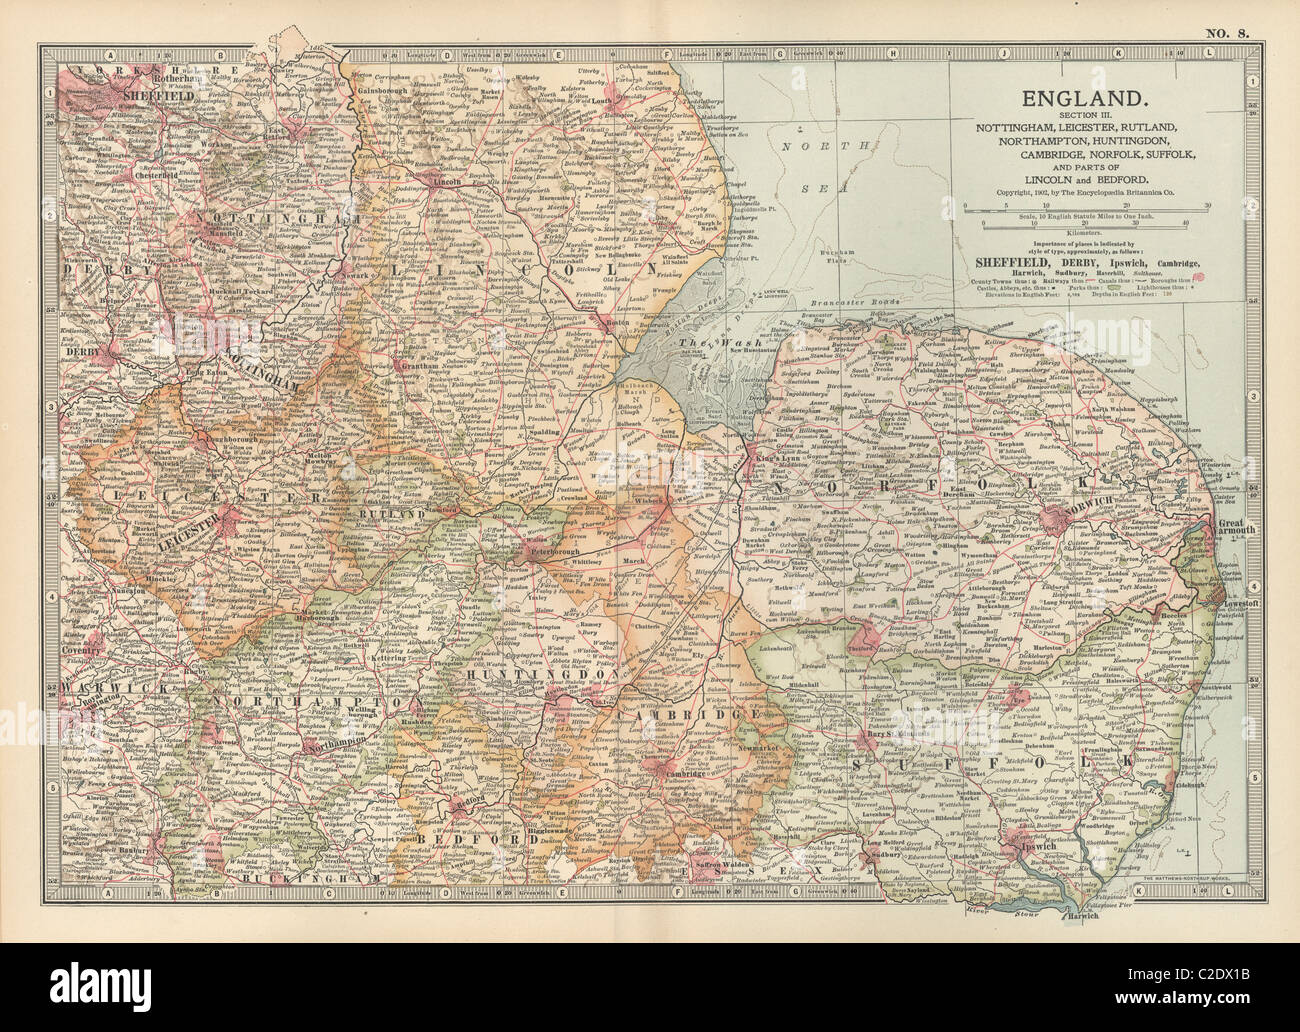 Map of England - Stock Image